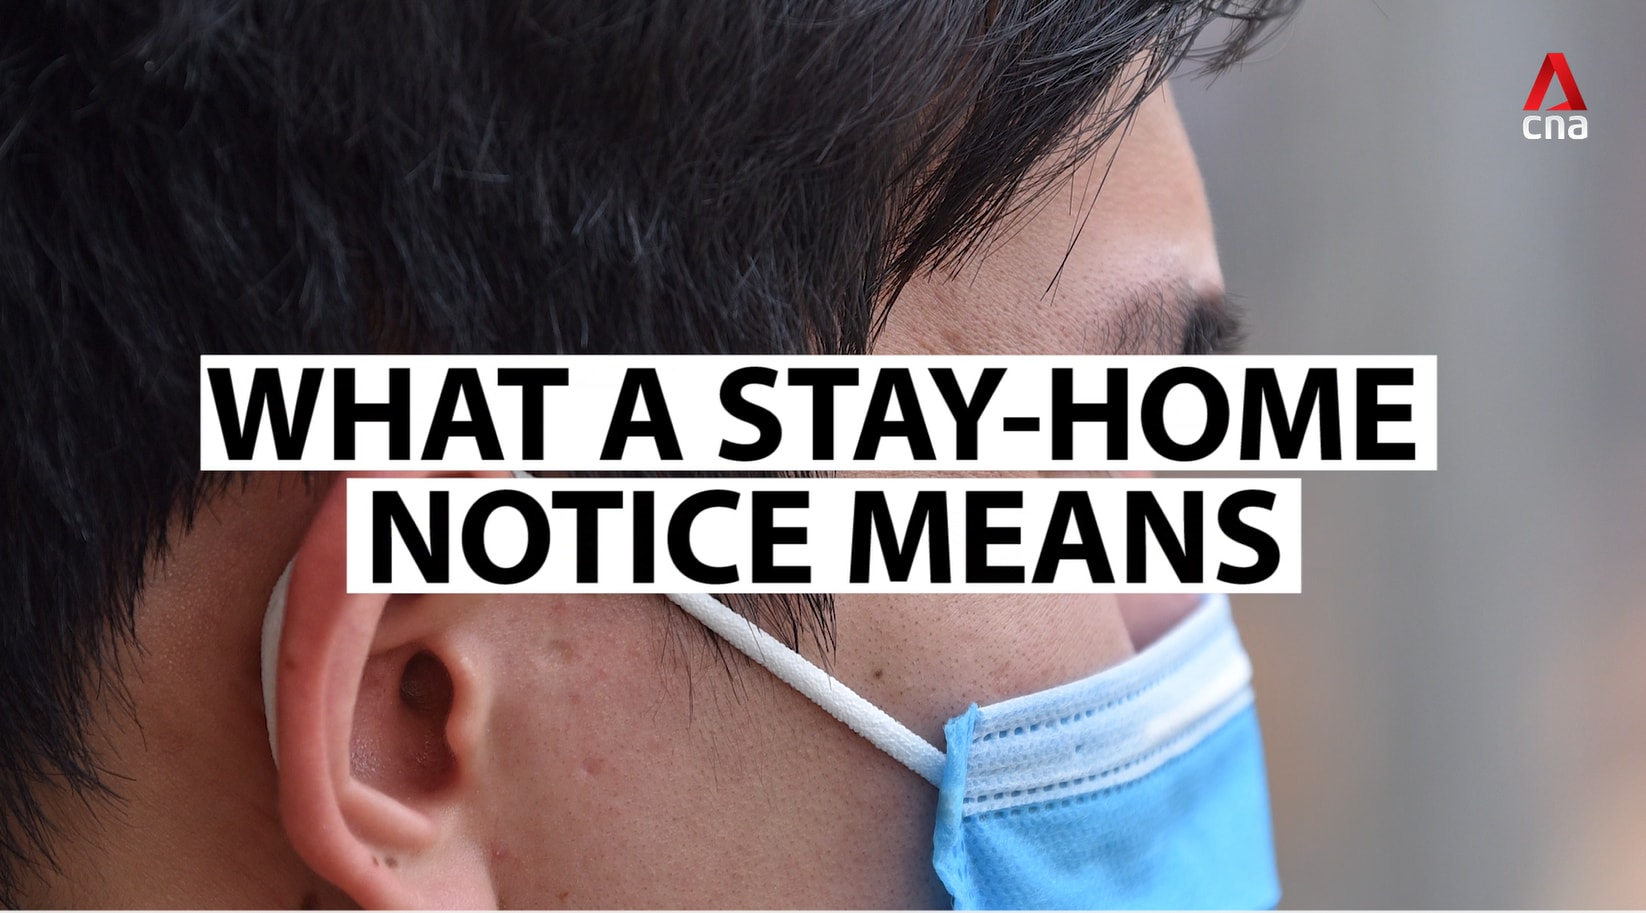 What does a stay-home notice mean and what happens if you flout the rules?